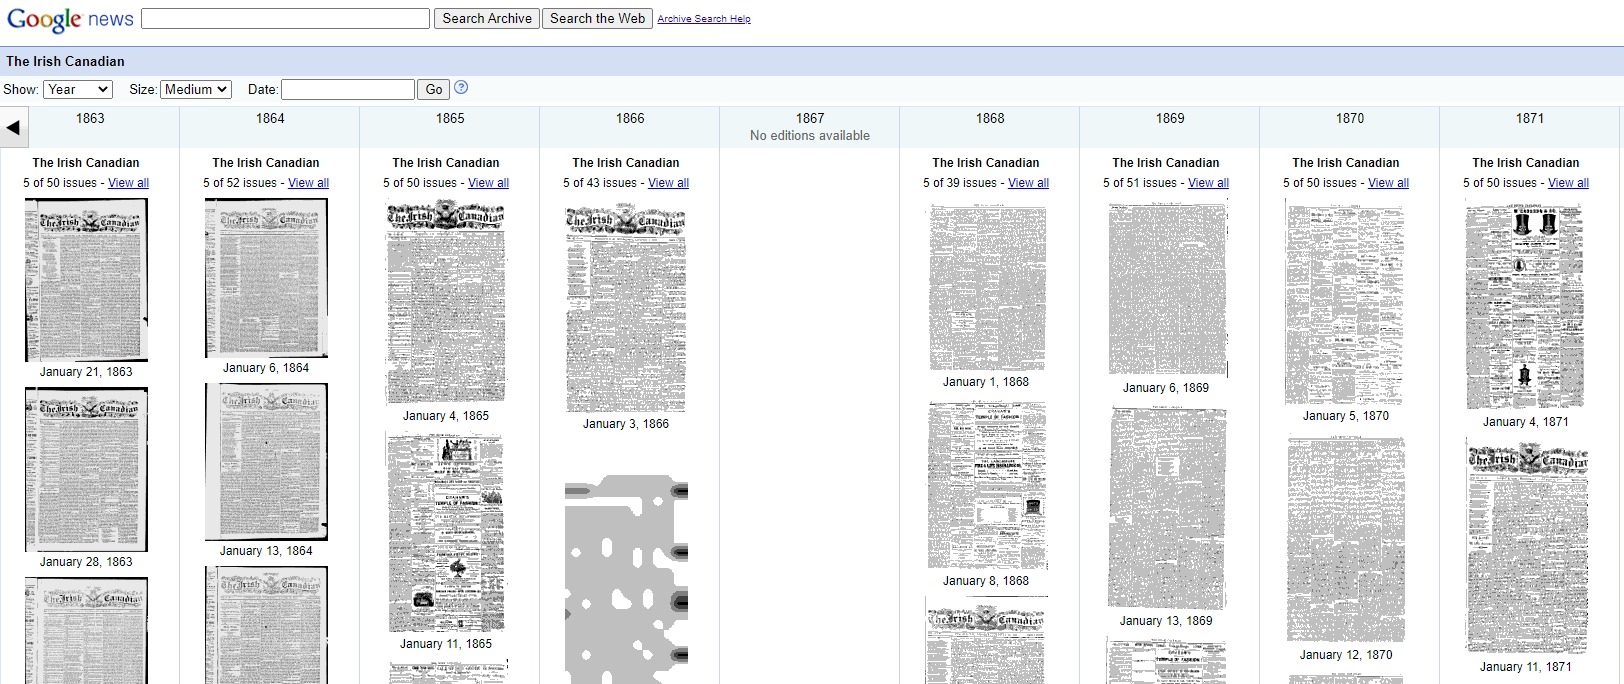 Google newspaper archive example